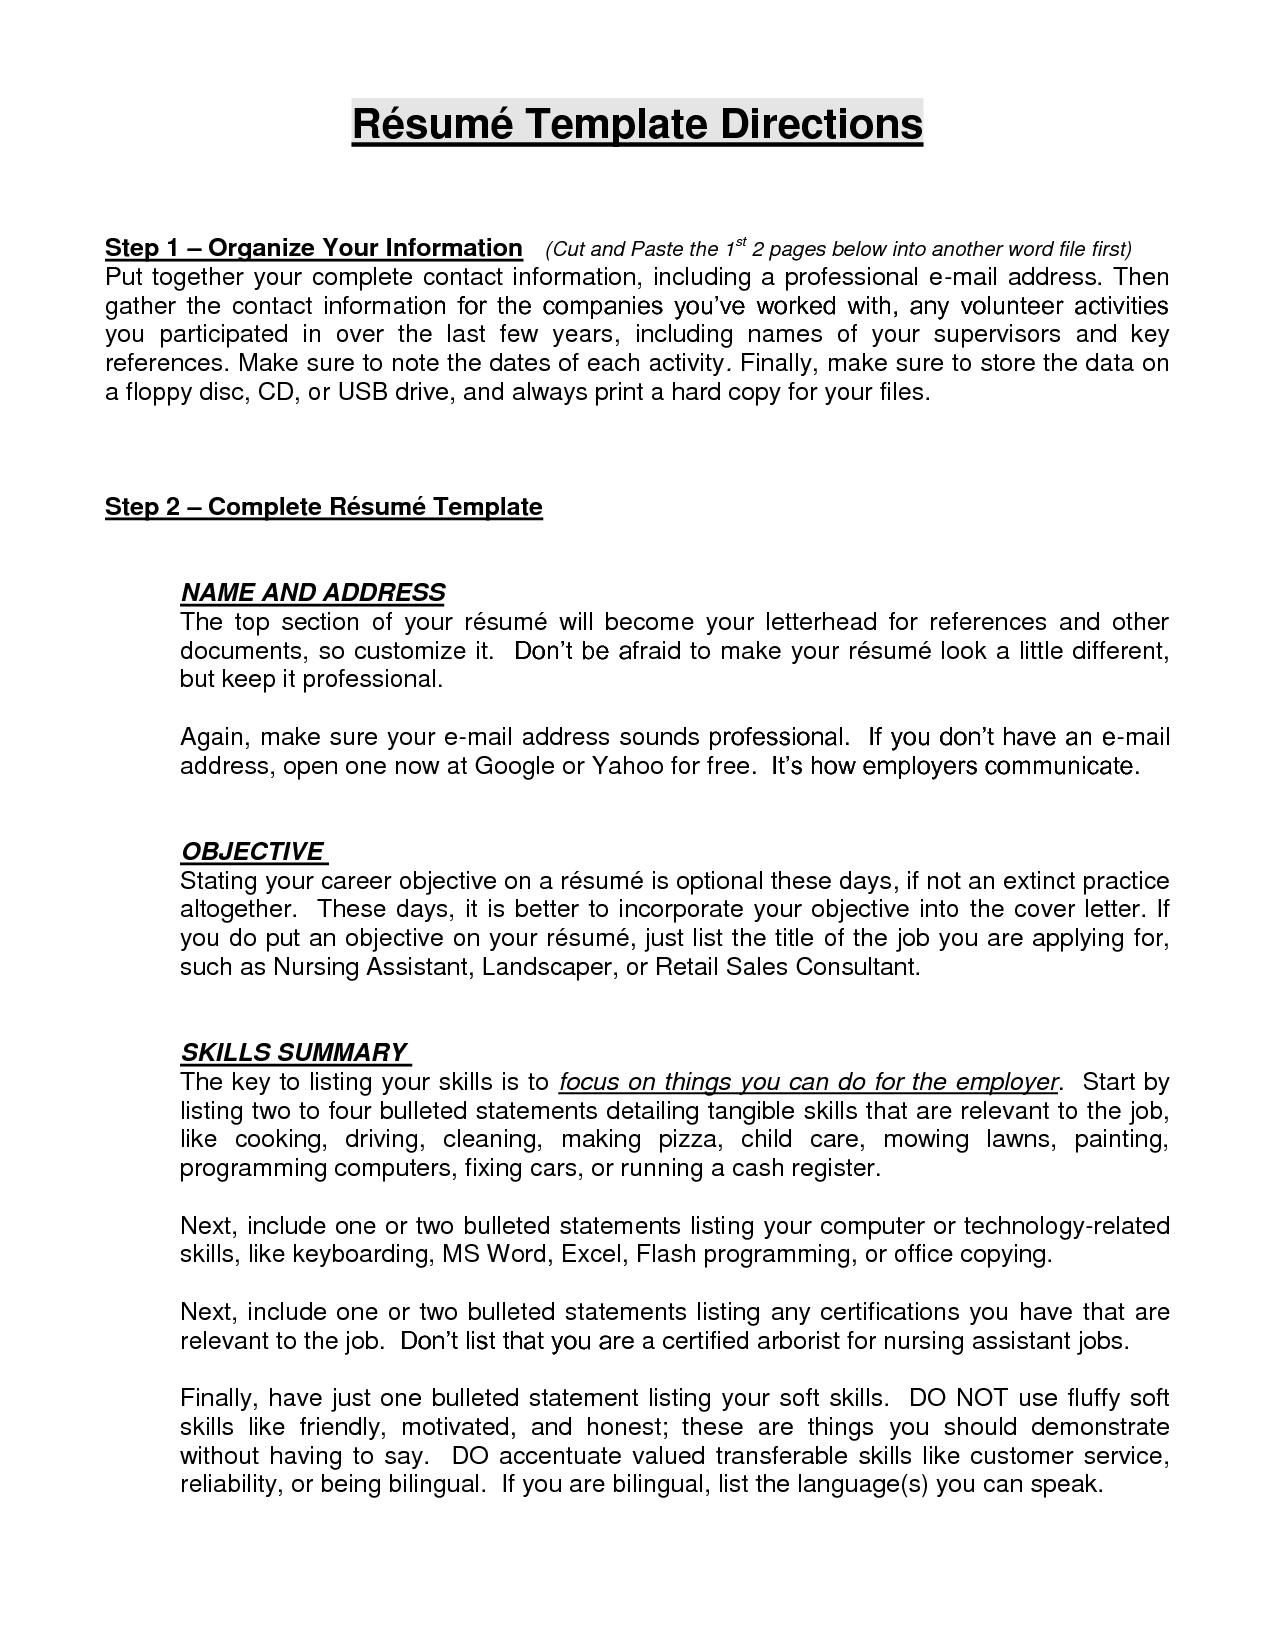 apply job good objective for resume today career examples nurse demonstrated abilities Resume Career Objective Examples For Resume Nurse